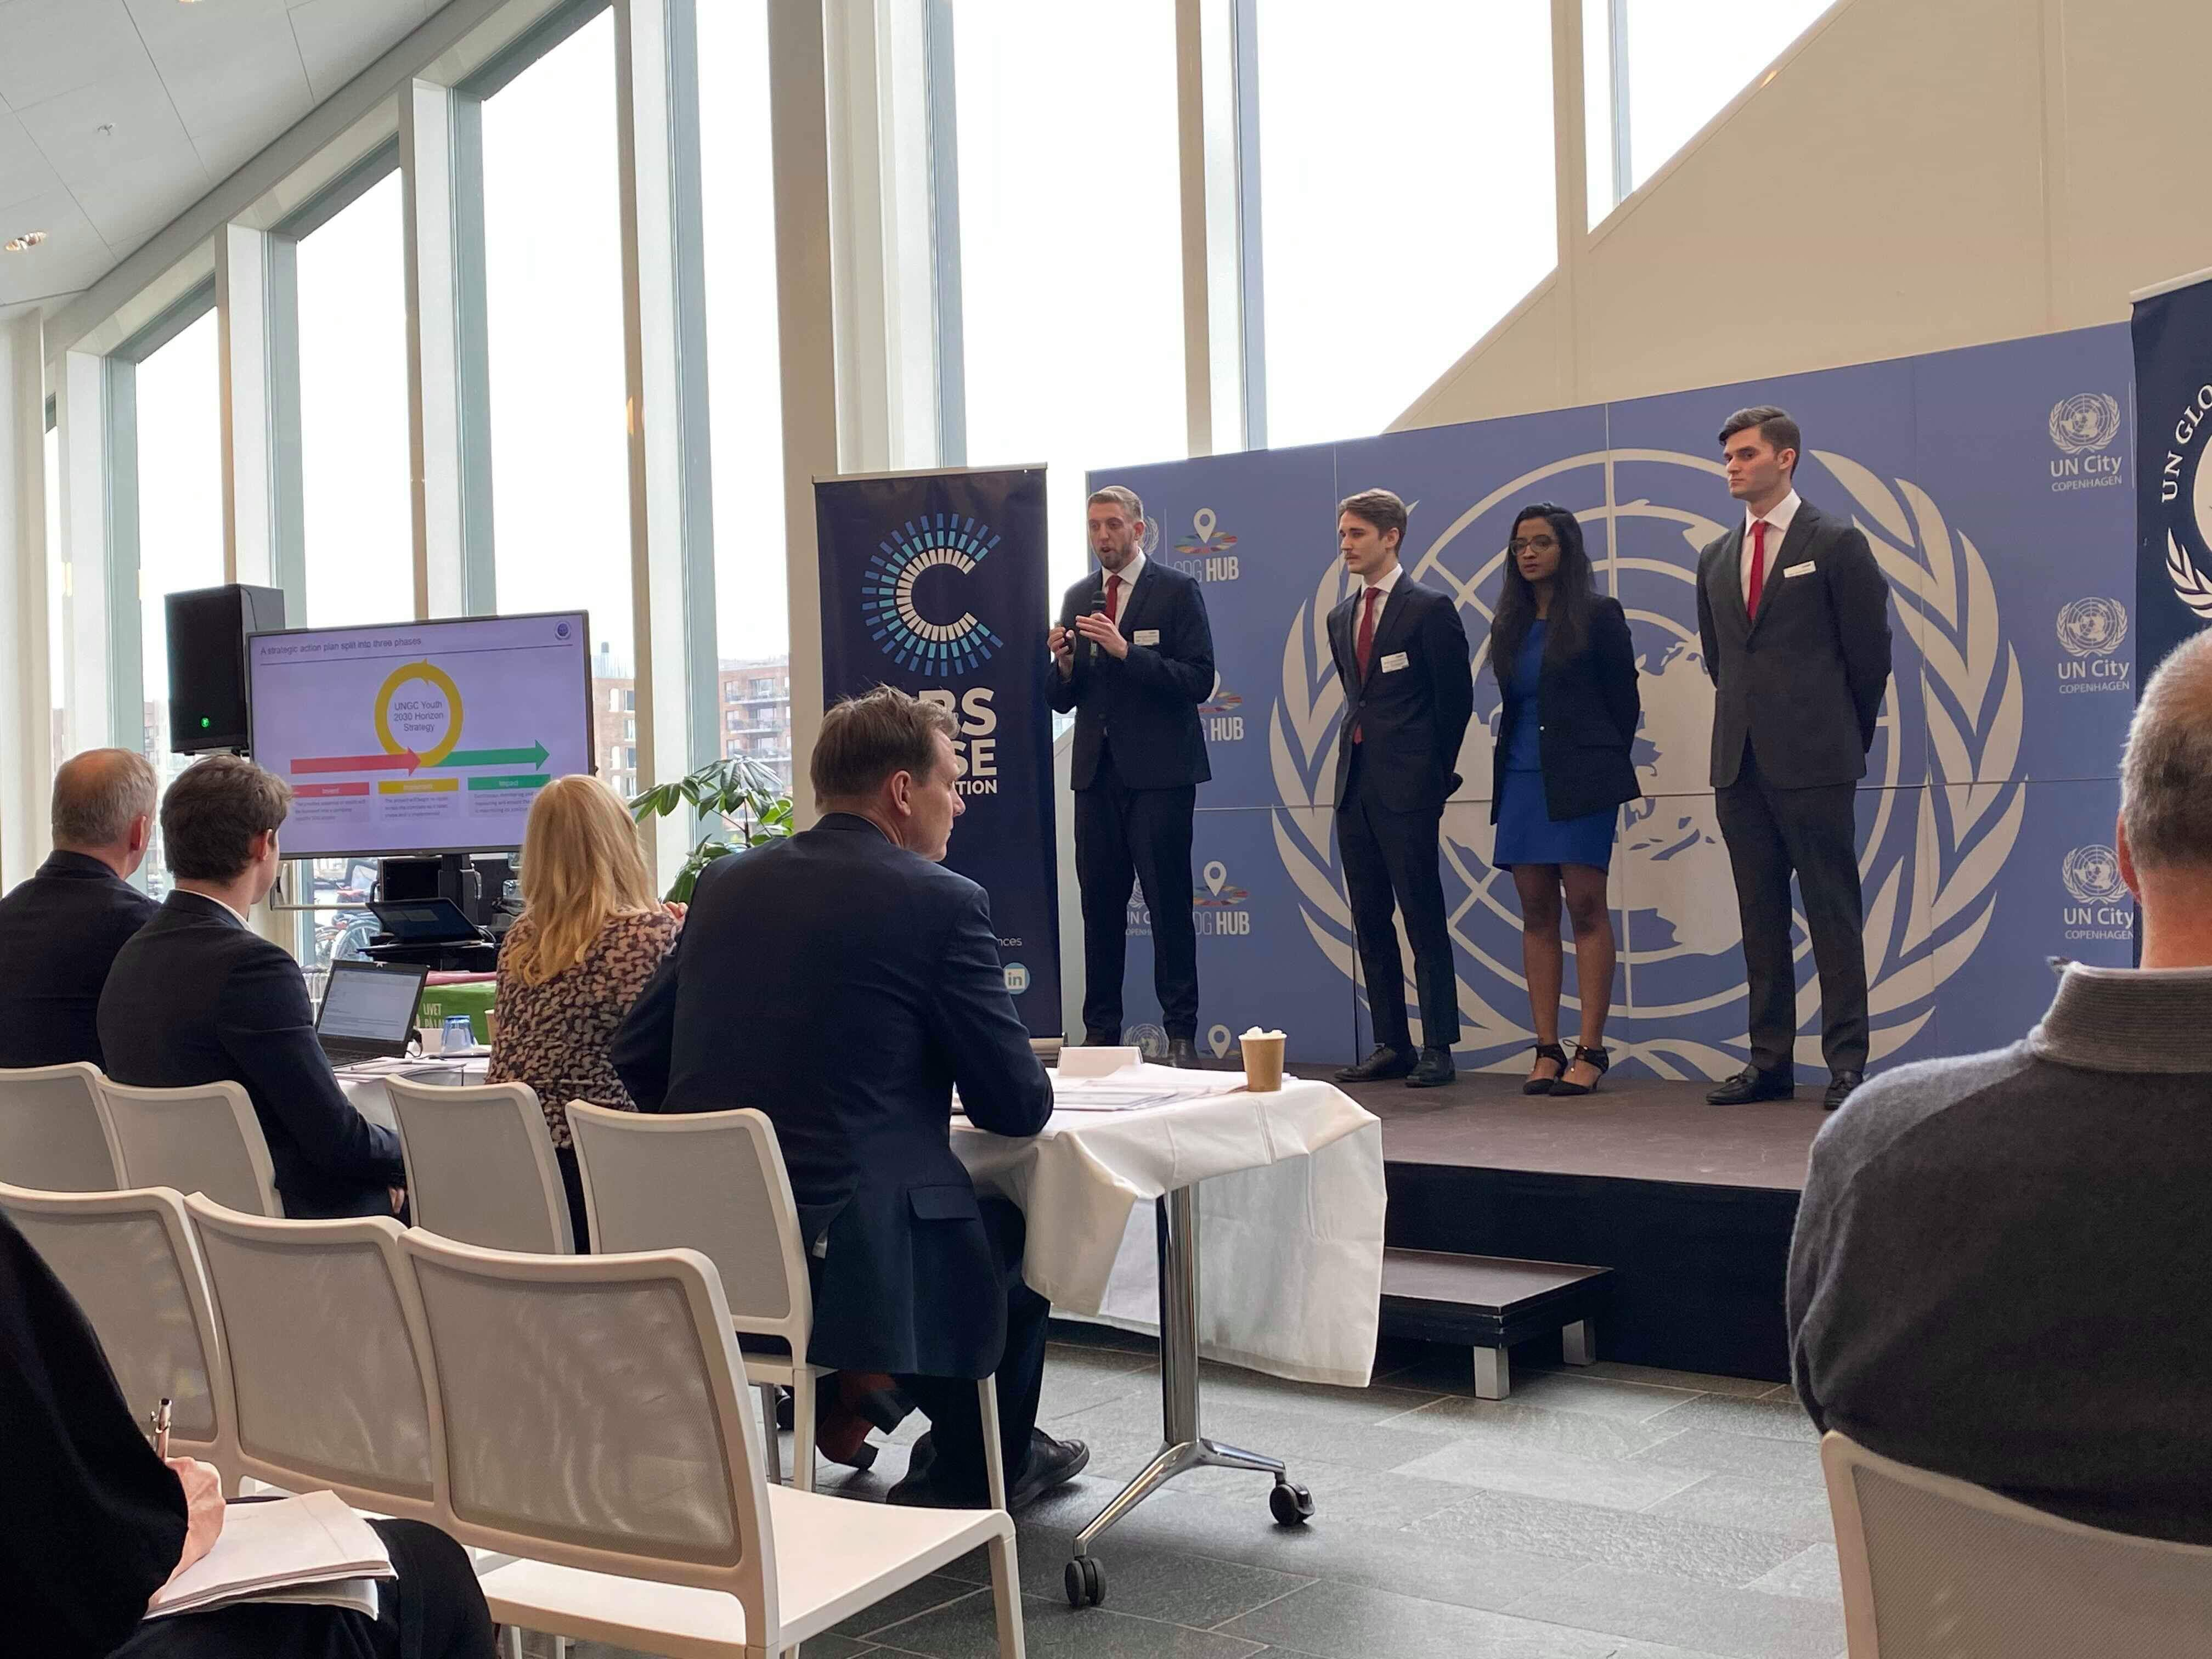 Presenting at the UN Global Compact in Denmark